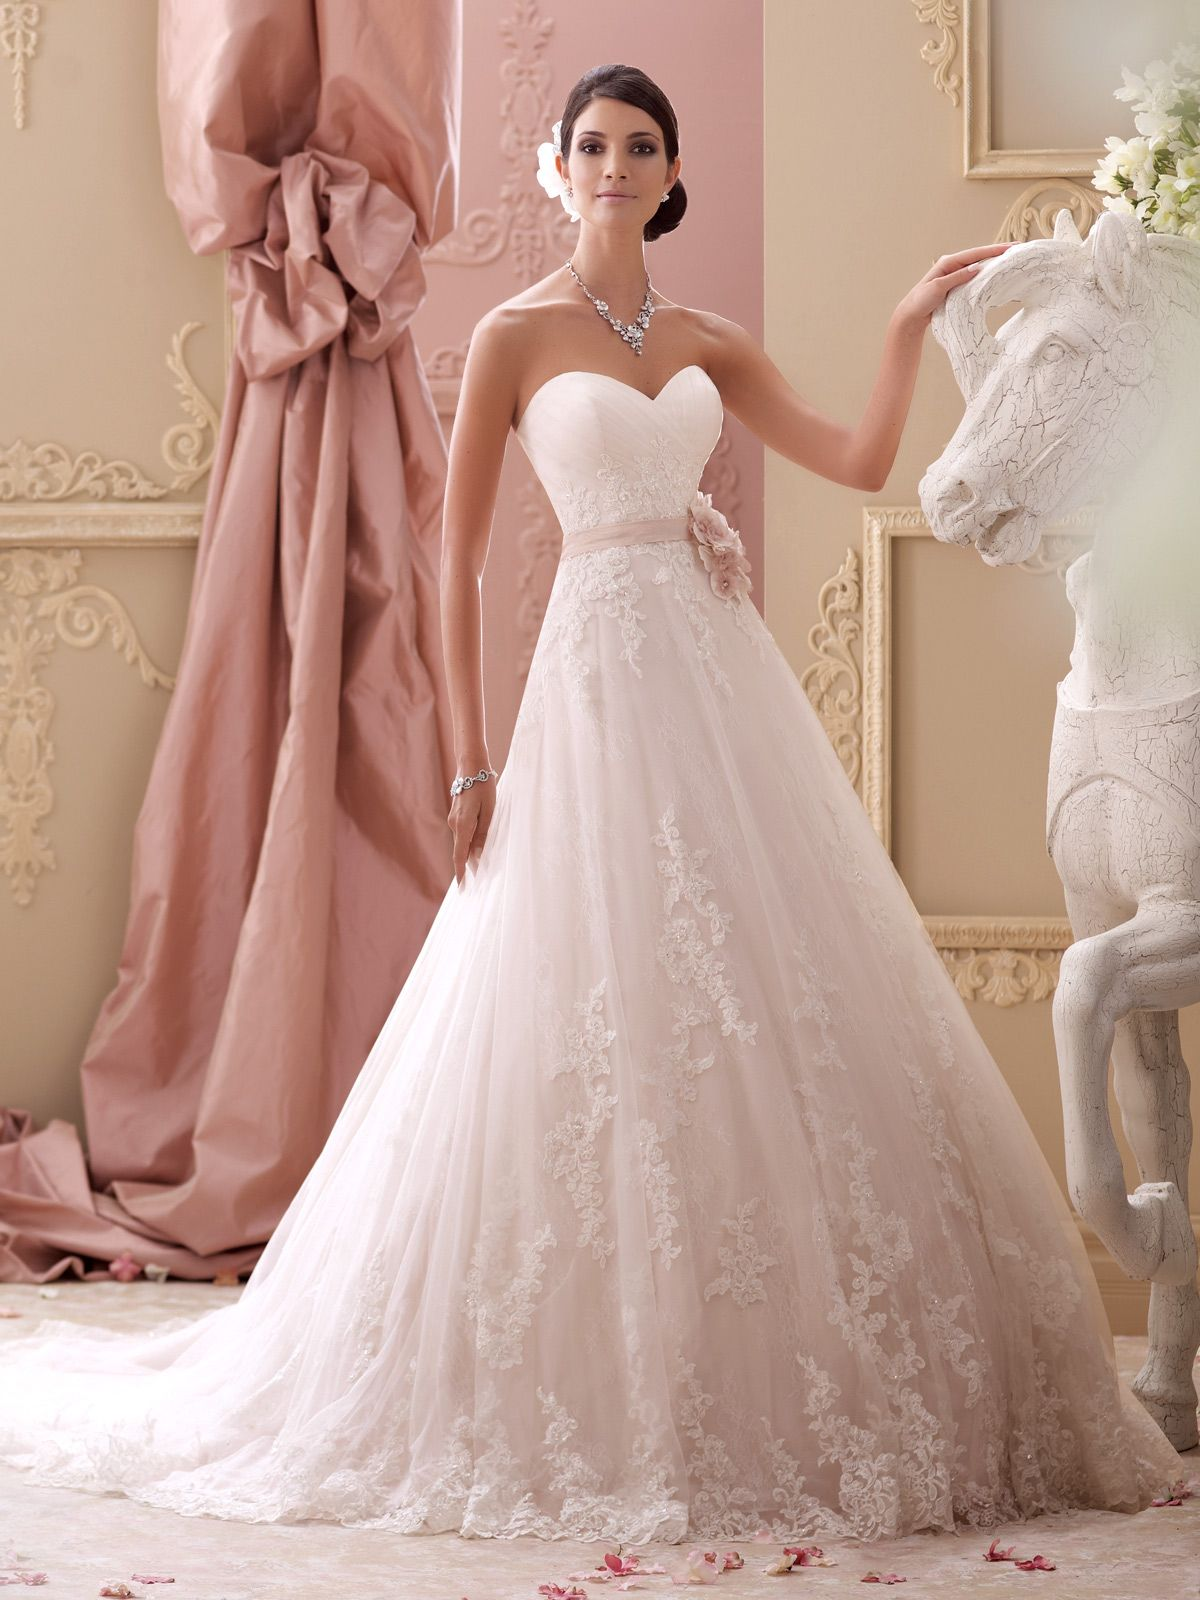 Unique wedding dresses fall 2018 martin thornburg david tutera blakesley style 115251 is a romantic strapless a line lace wedding dress designed by david tutera for mon cheri click for more information on this style junglespirit Choice Image